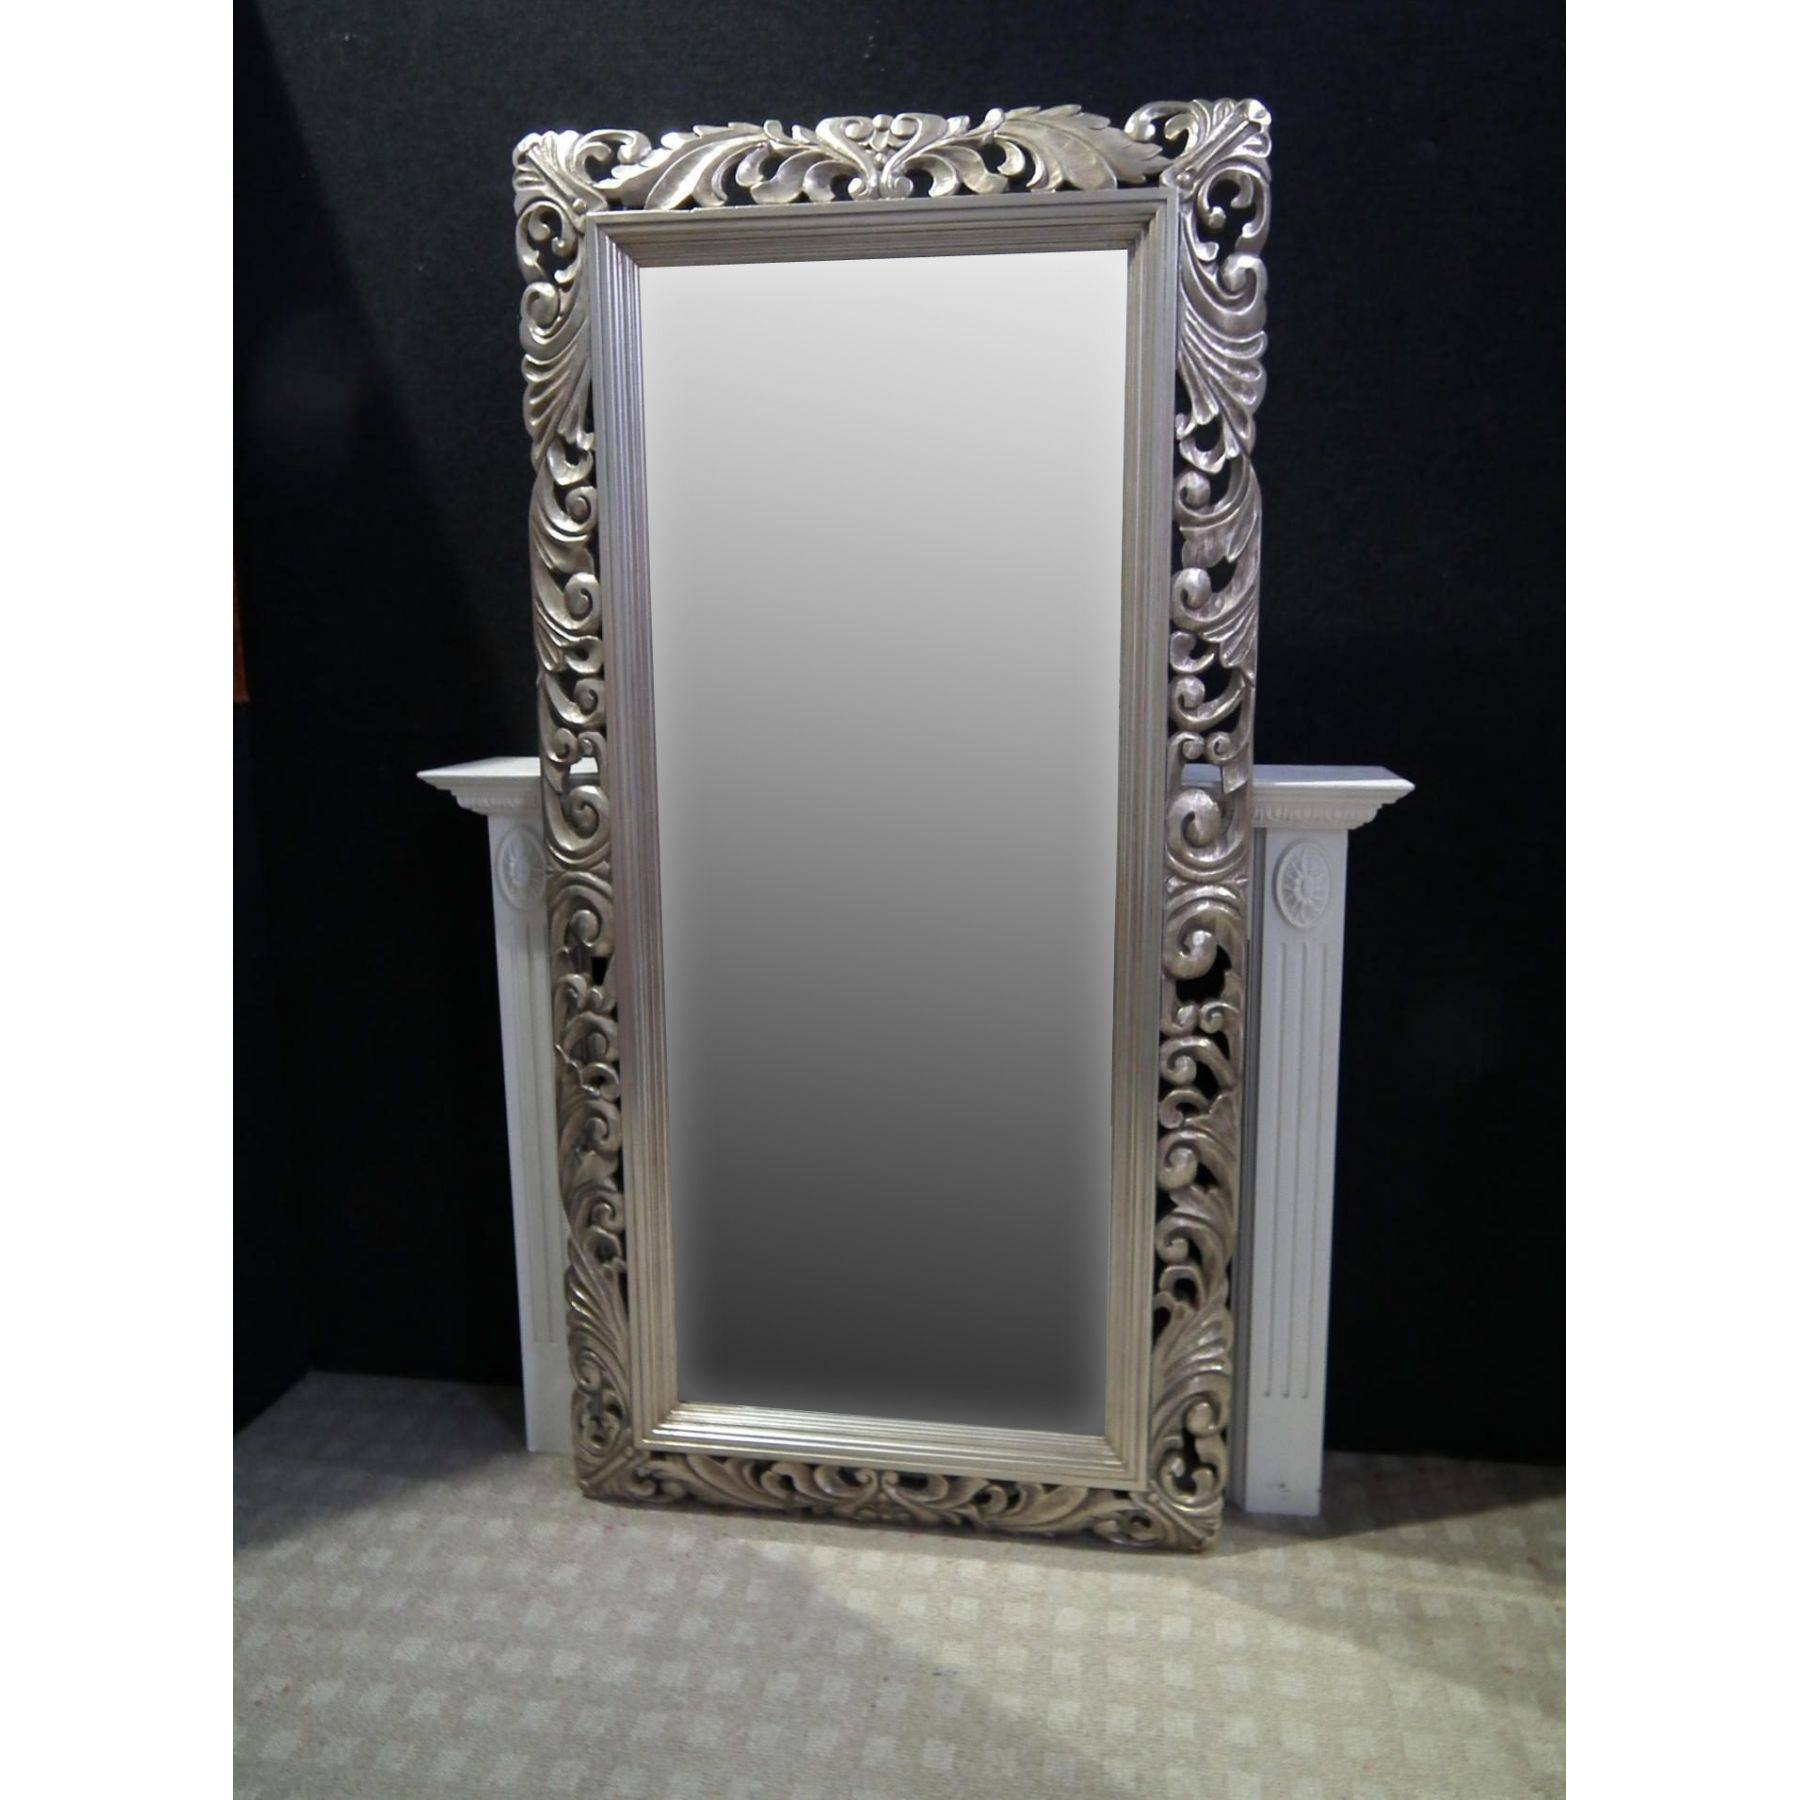 Interior & Decoration: Antique Floorstanding Mirrorornate Mirrors with regard to Ornate Leaner Mirrors (Image 8 of 15)